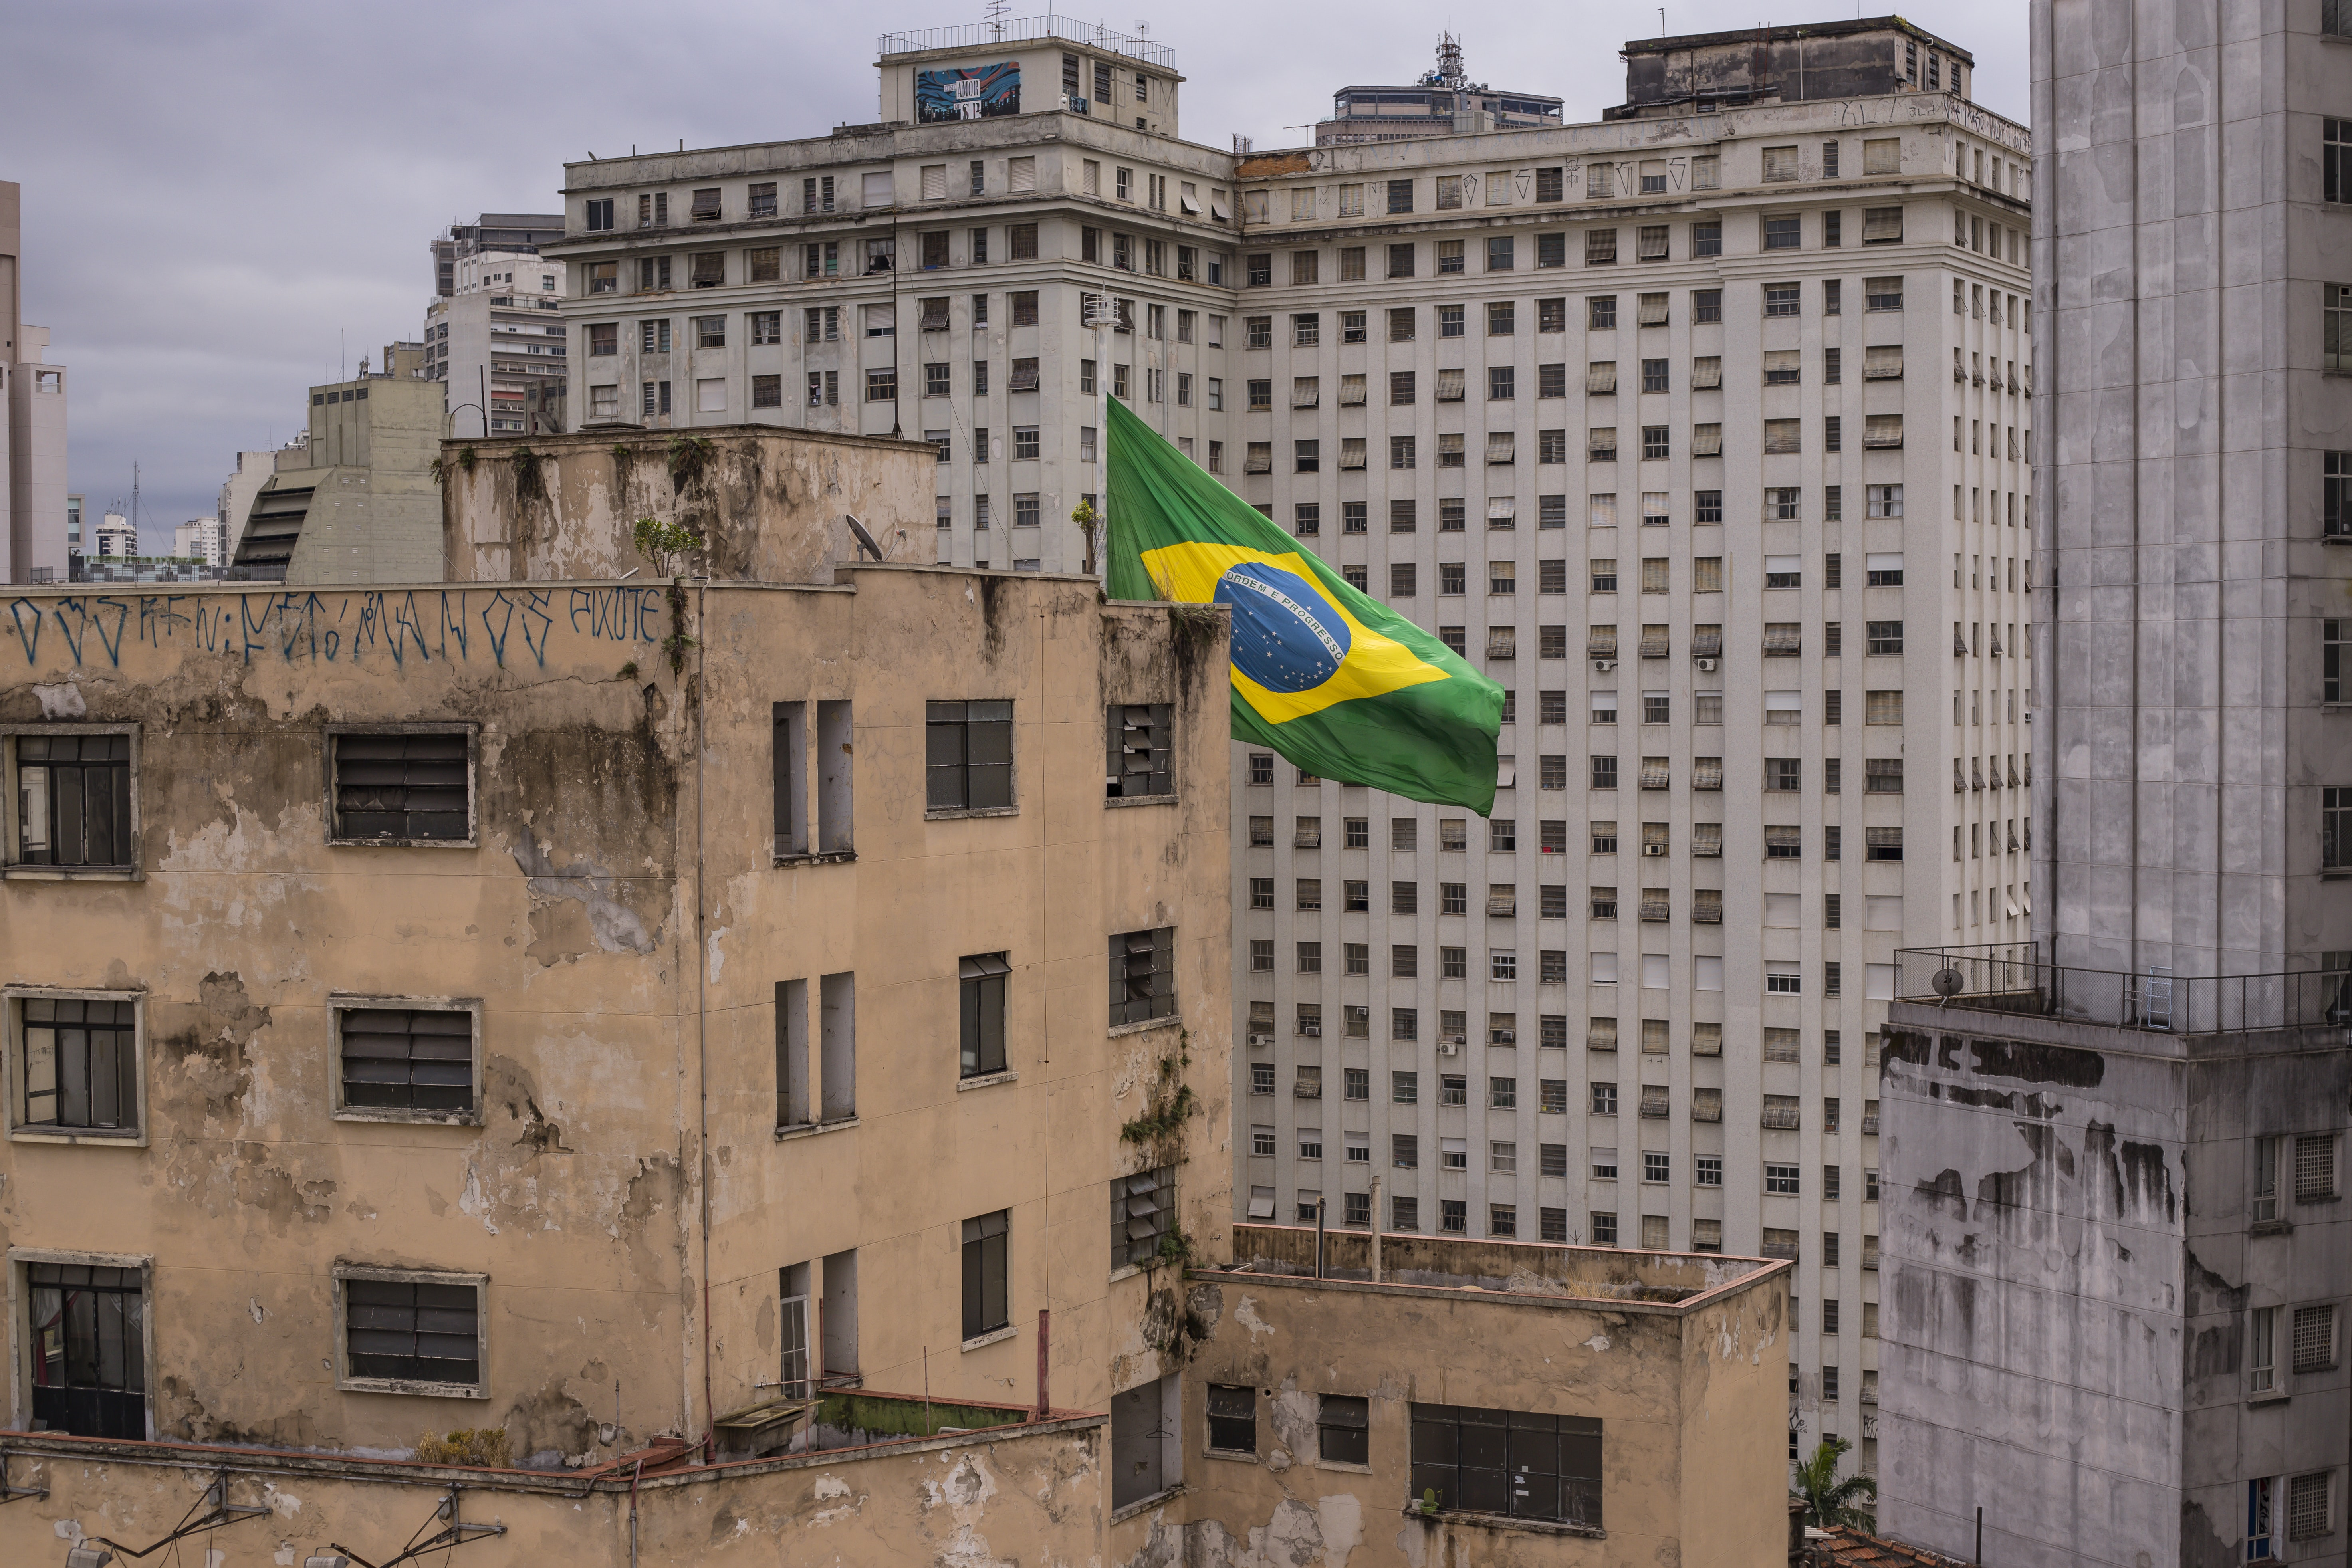 flag of Brazil on top of concrete building